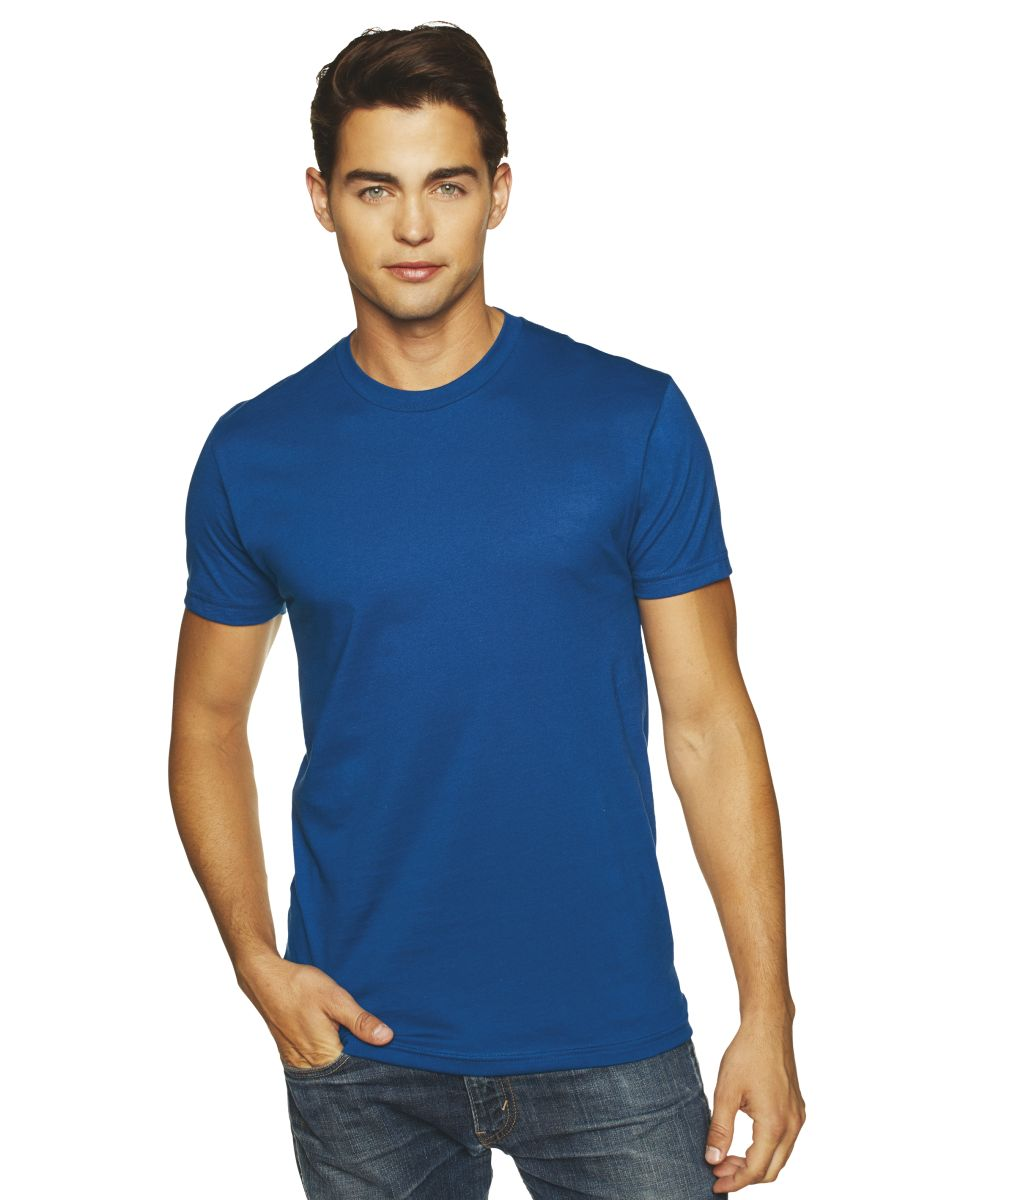 Apparel Clothing Wholesale